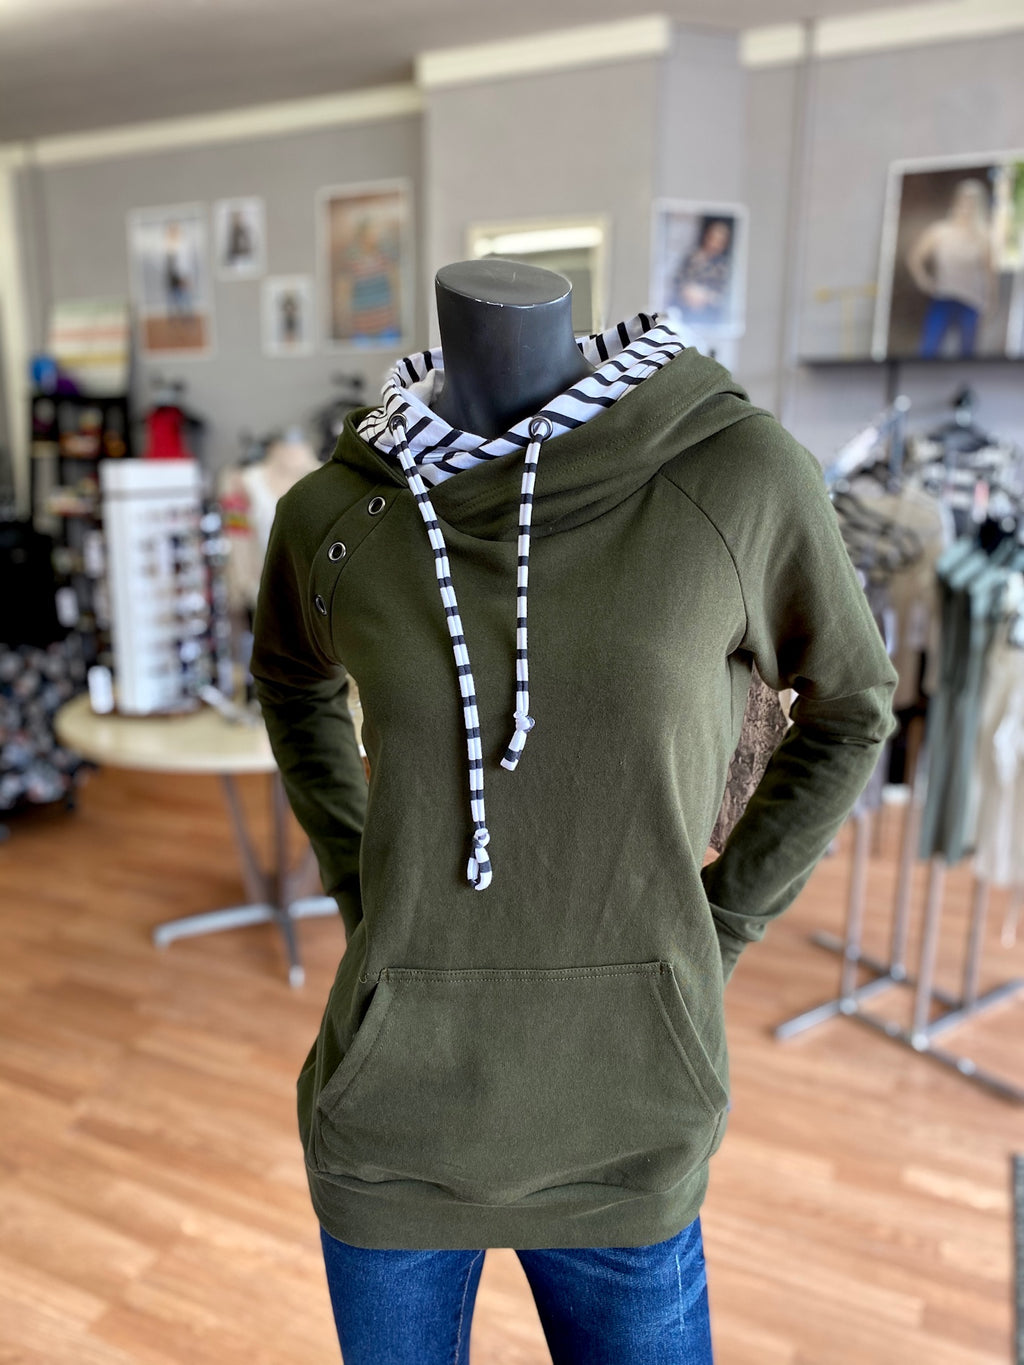 Bria Bella & Co - Adventure Clothes Co. - Olive Hoodie with Stripes